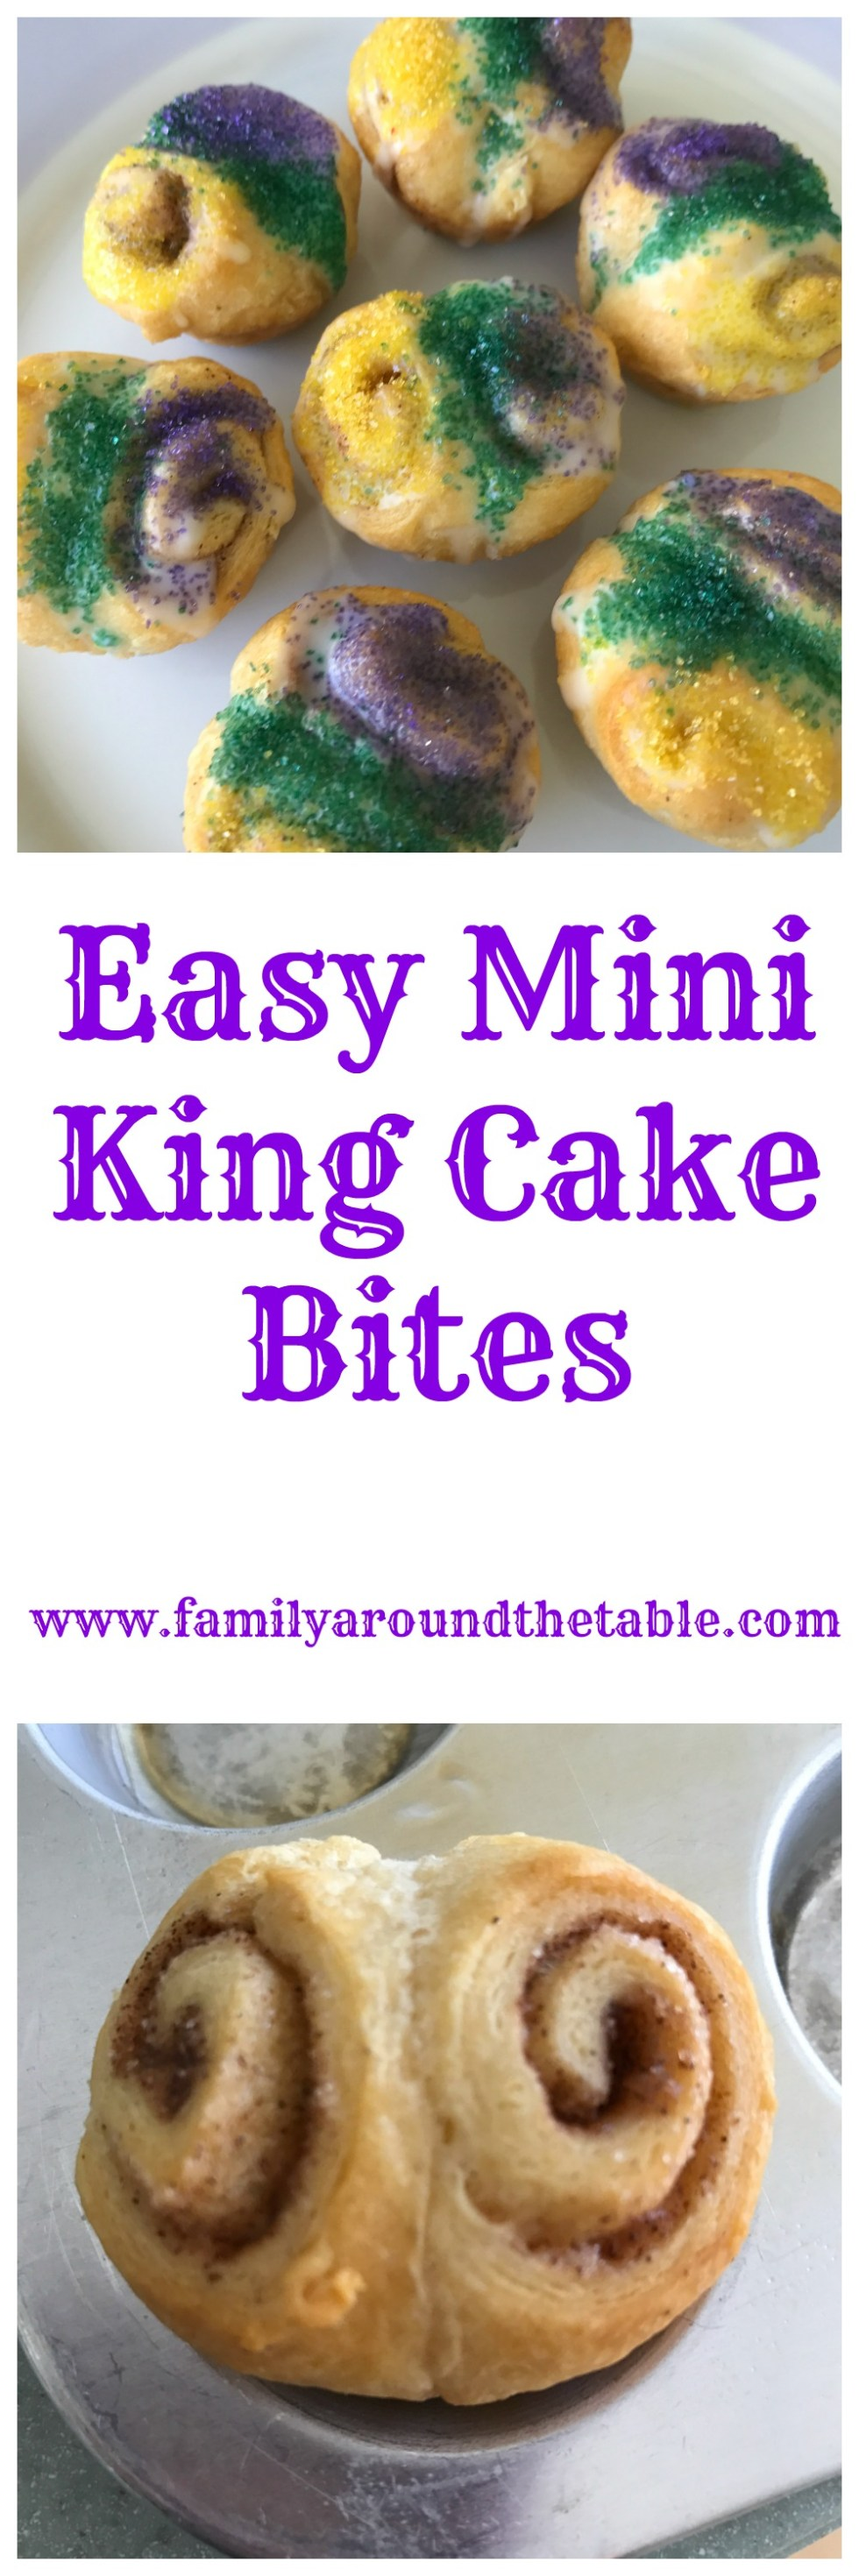 King Cake is a Mardi Gras tradition. This mini version is a fun treat.